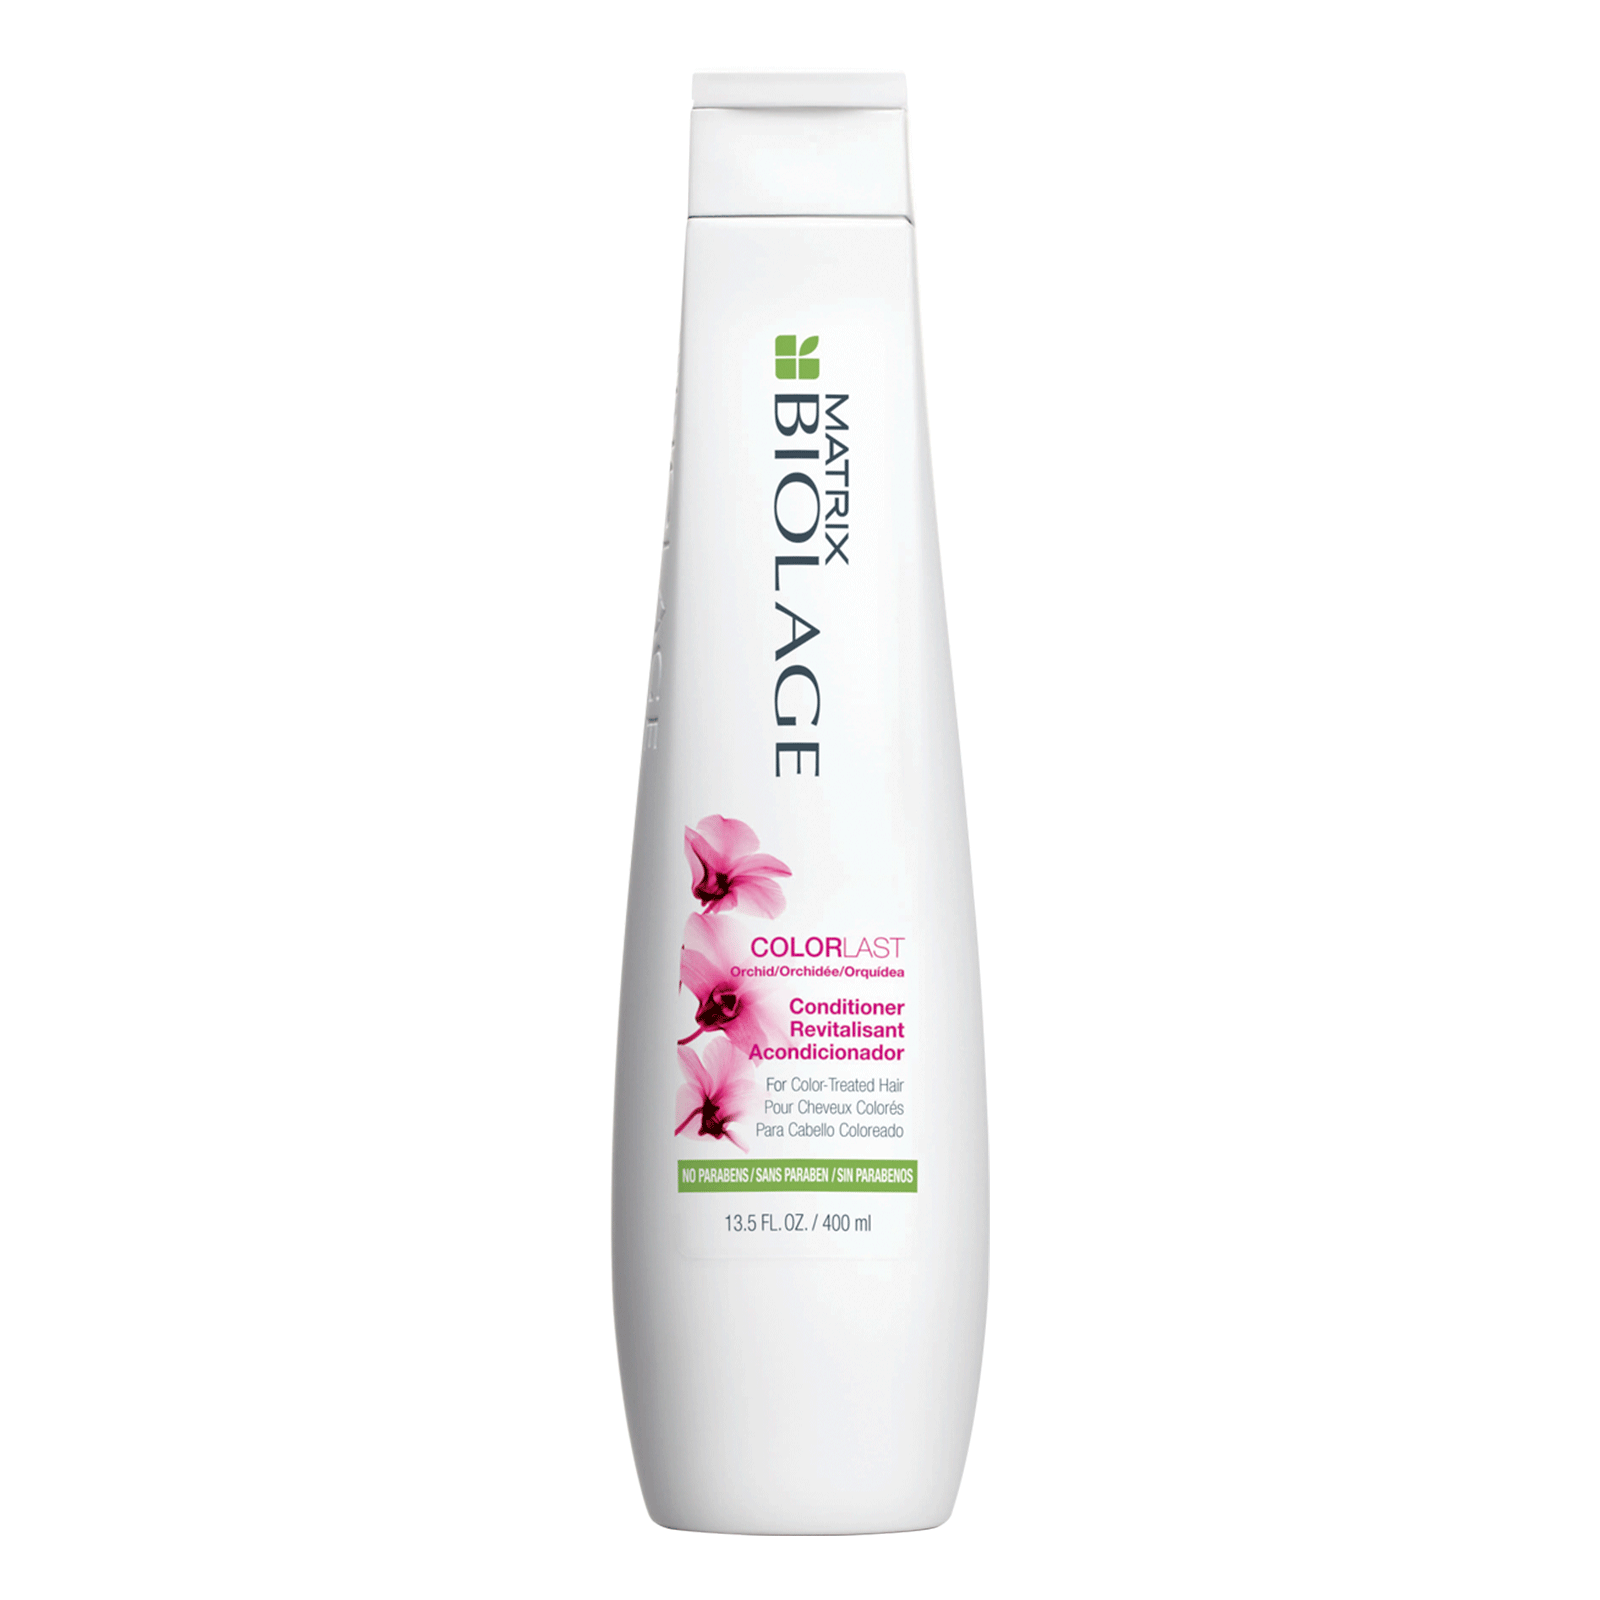 Biolage Colorlast Conditioner Matrix Cosmoprof